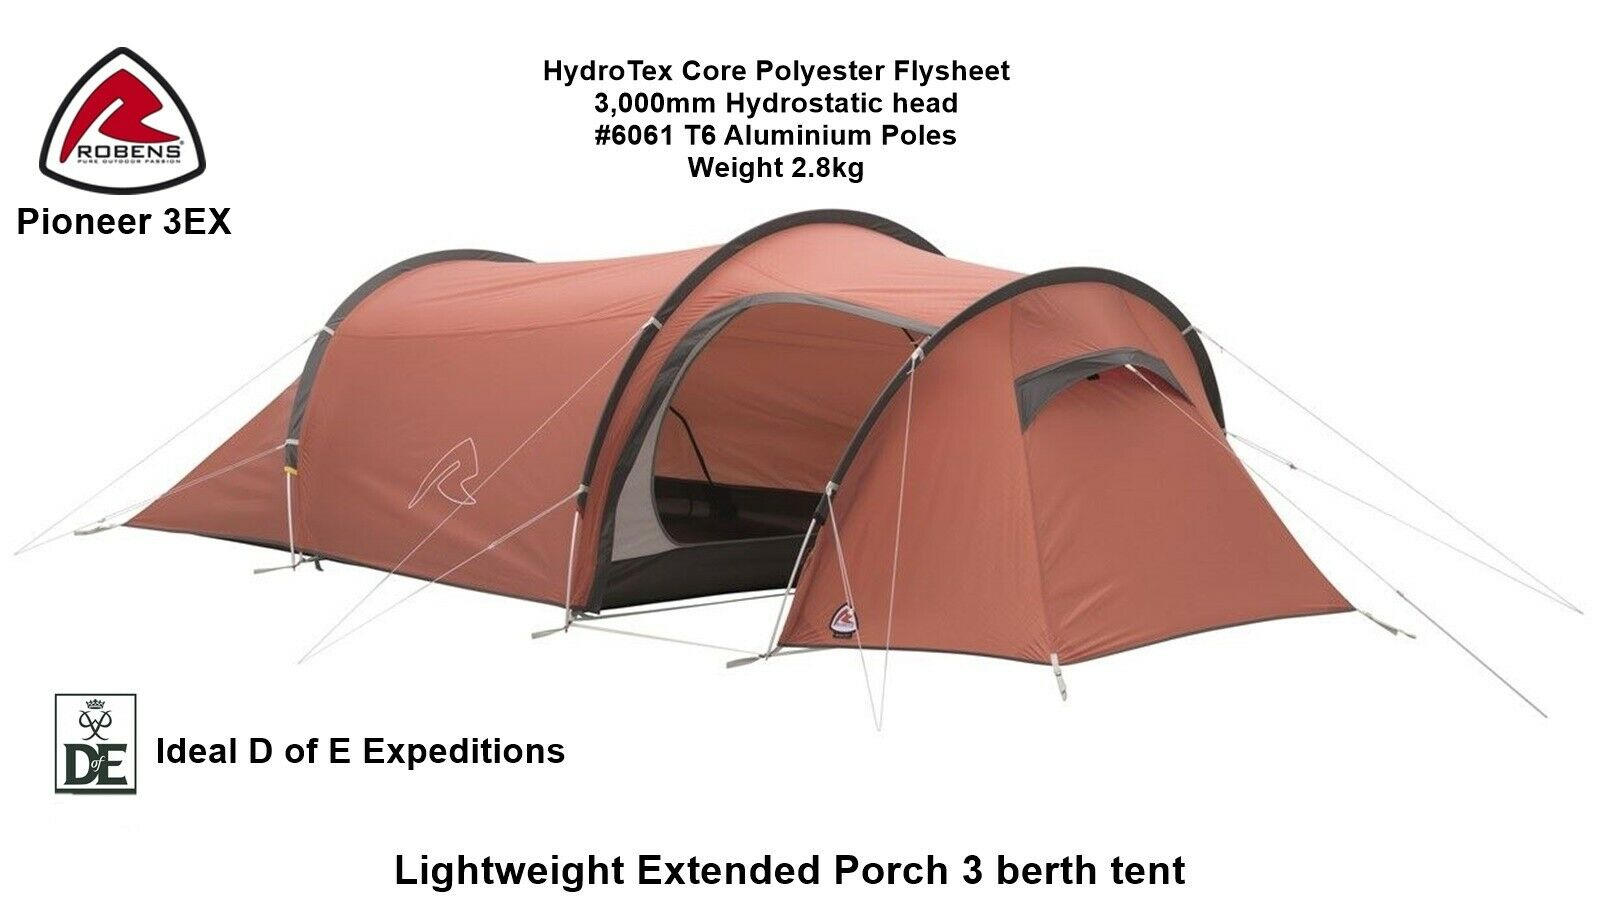 Robens Pioneer 3EX  - NEW for 2019 - Lightweight 3 Berth Tent - Ideal for D of E